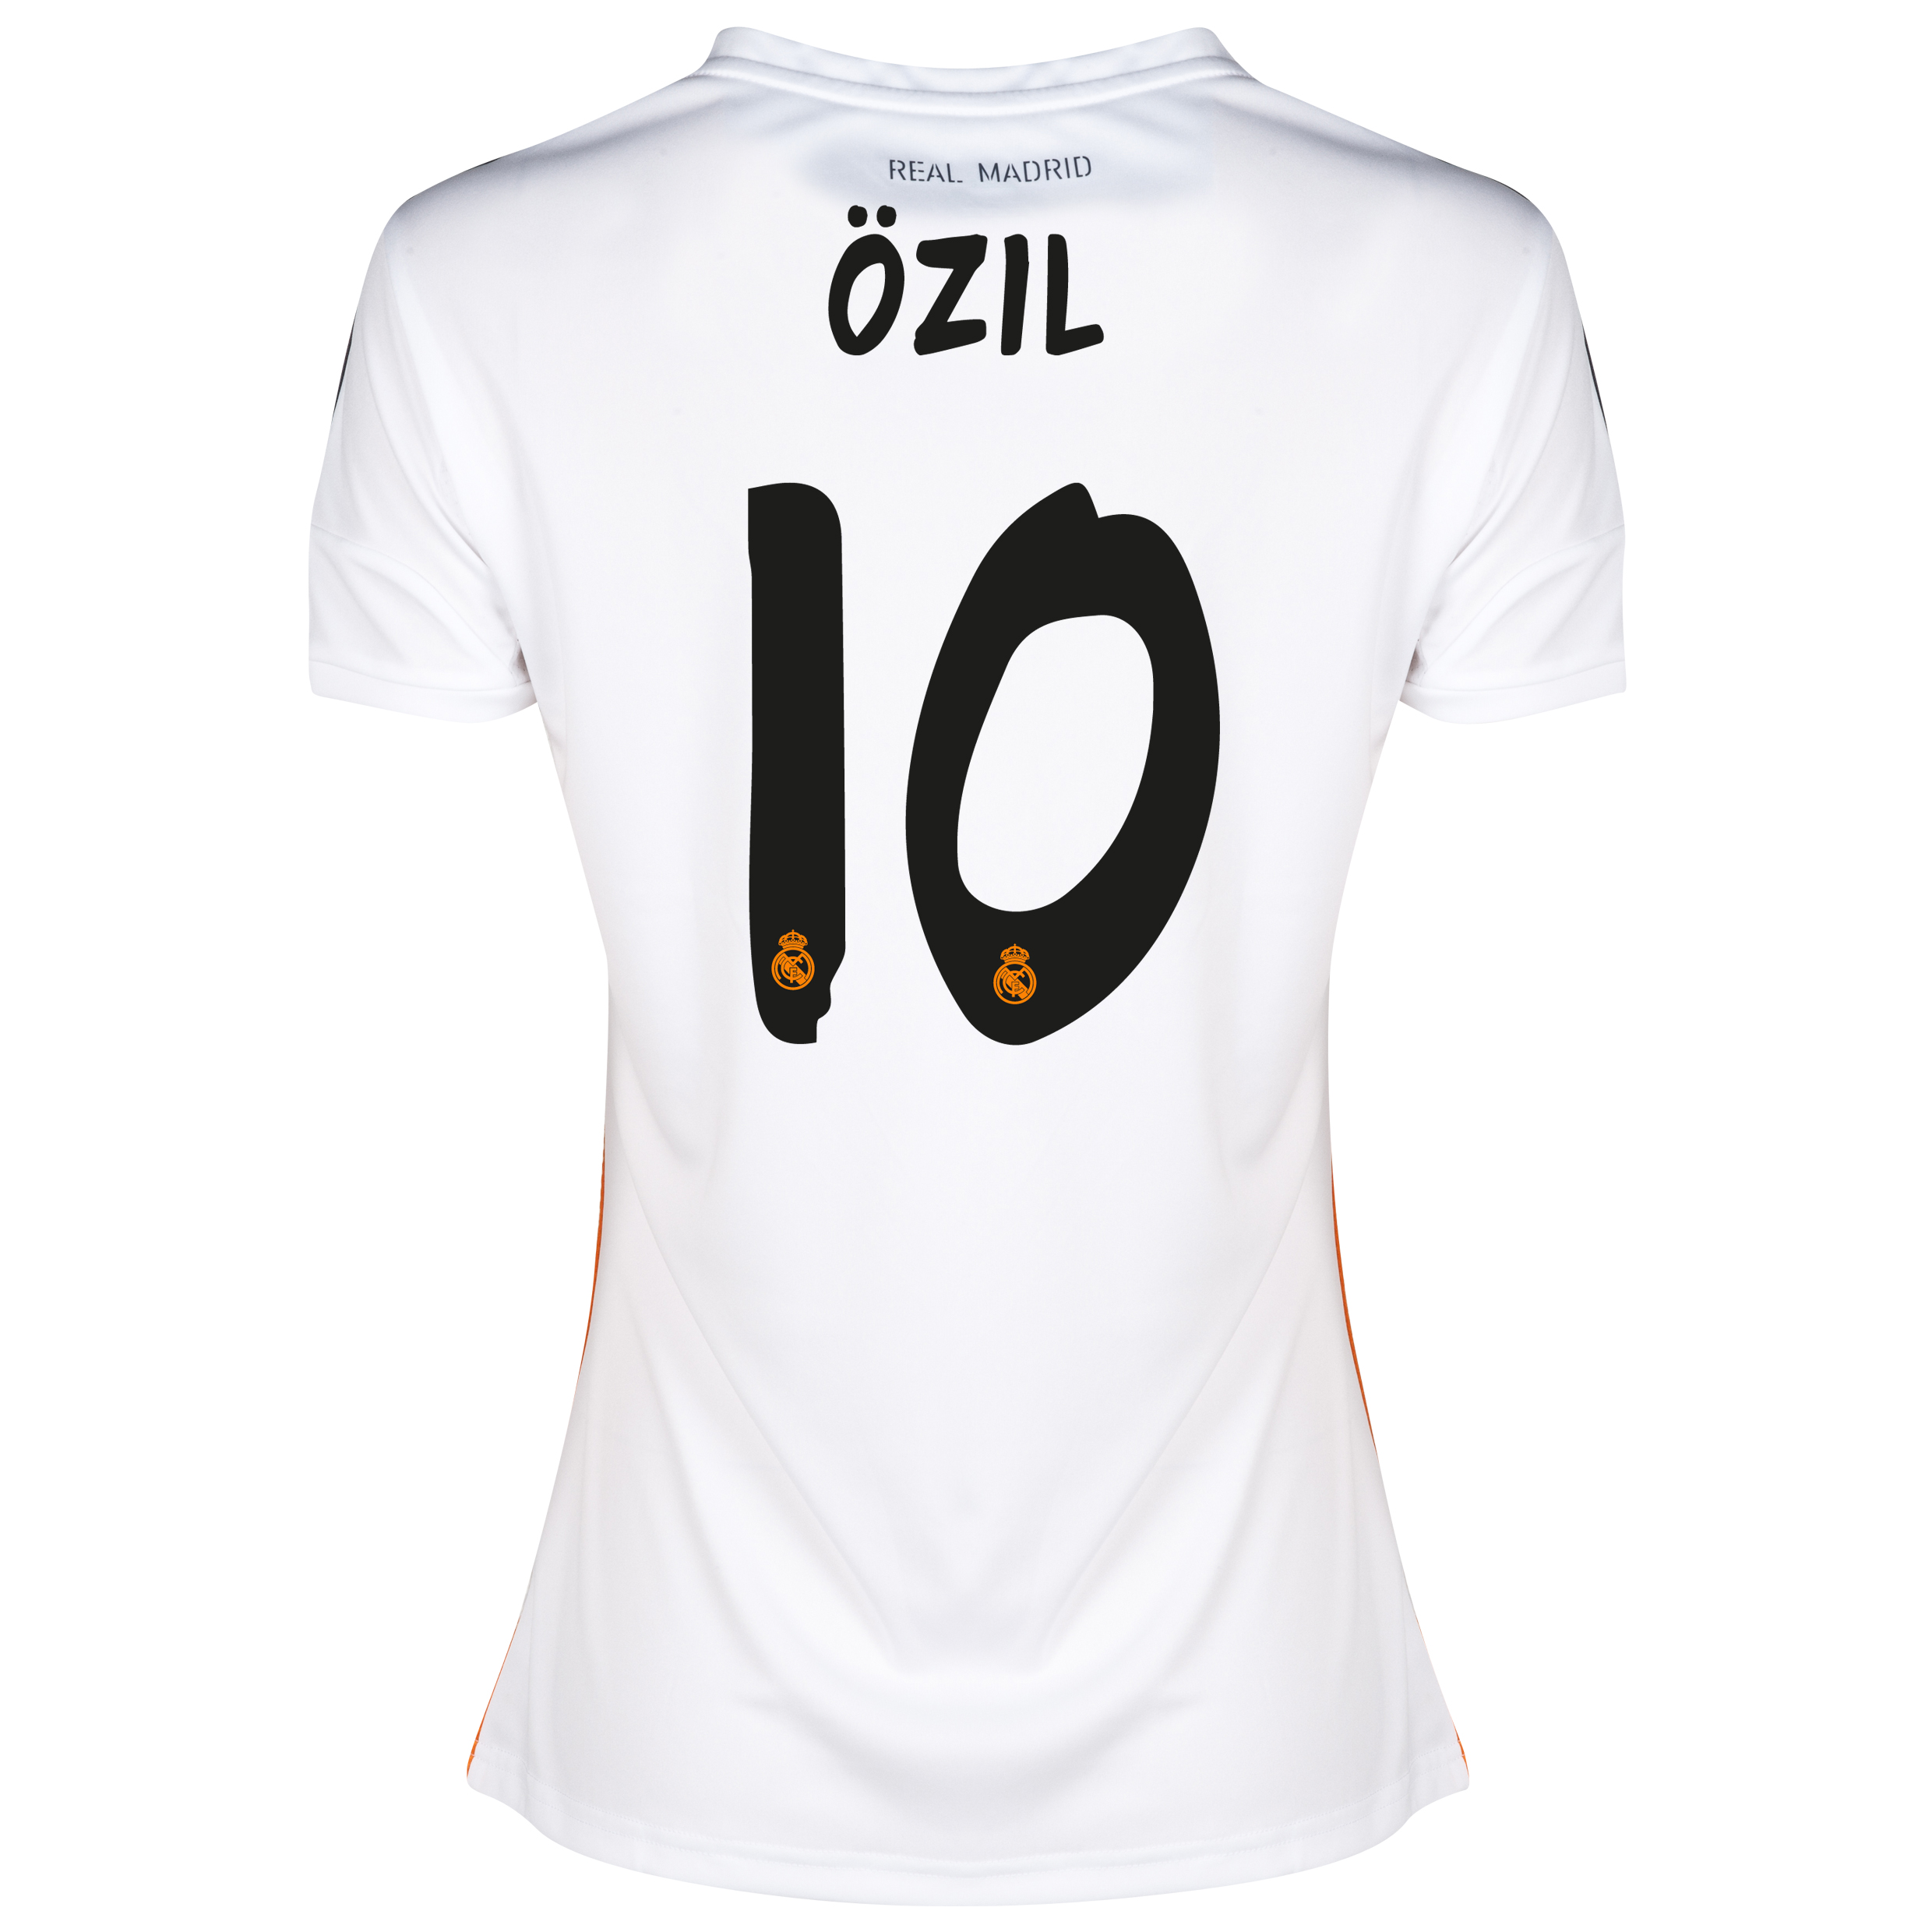 Real Madrid Home Shirt 2013/14 - Womens with Özil 10 printing